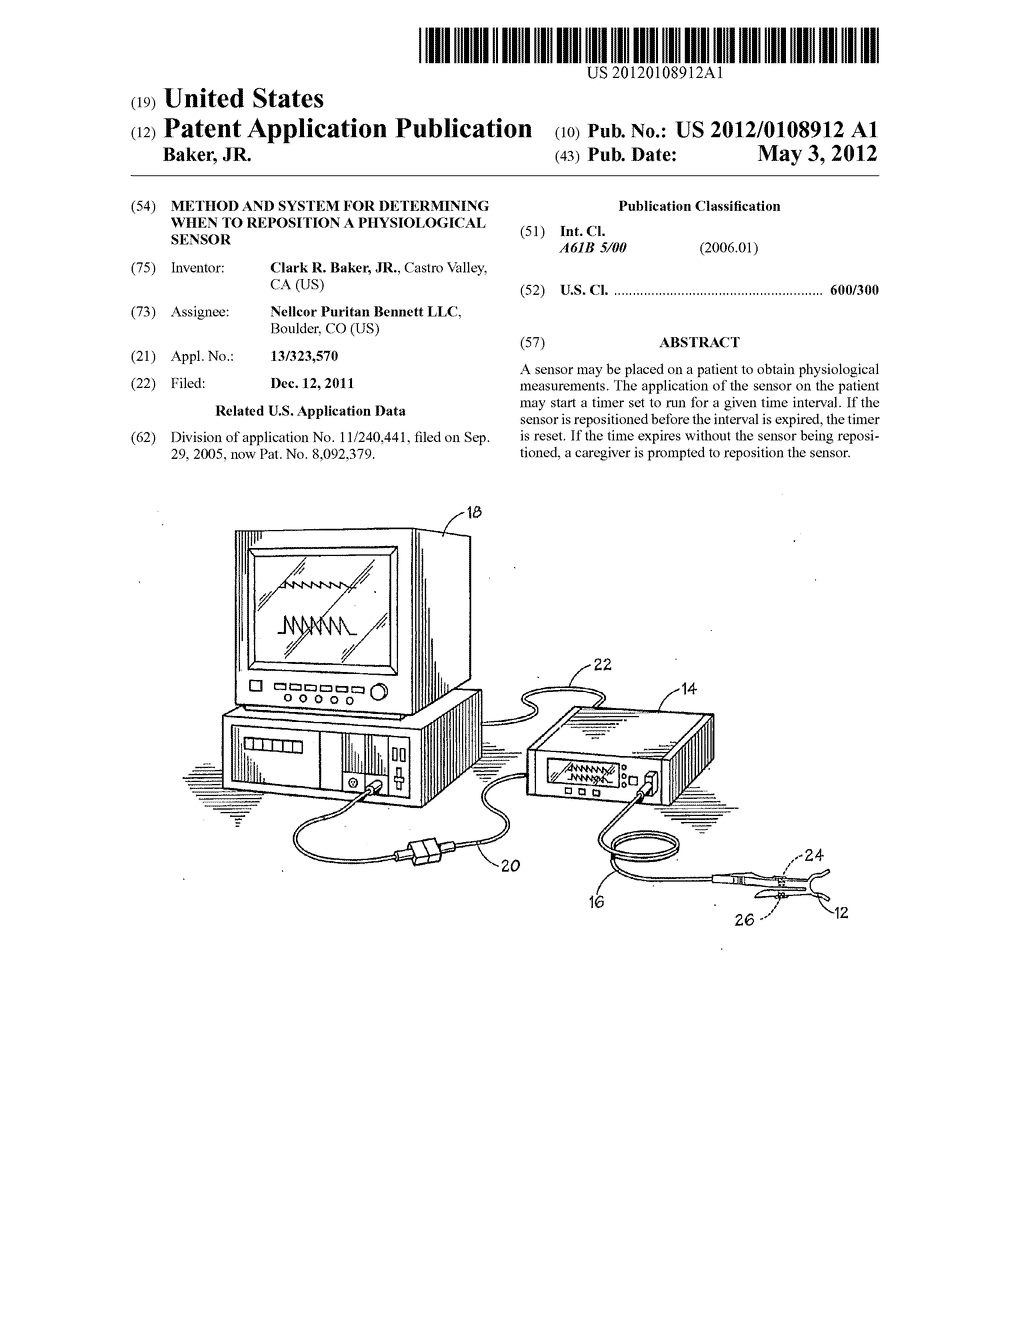 METHOD AND SYSTEM FOR DETERMINING WHEN TO REPOSITION A PHYSIOLOGICAL     SENSOR - diagram, schematic, and image 01